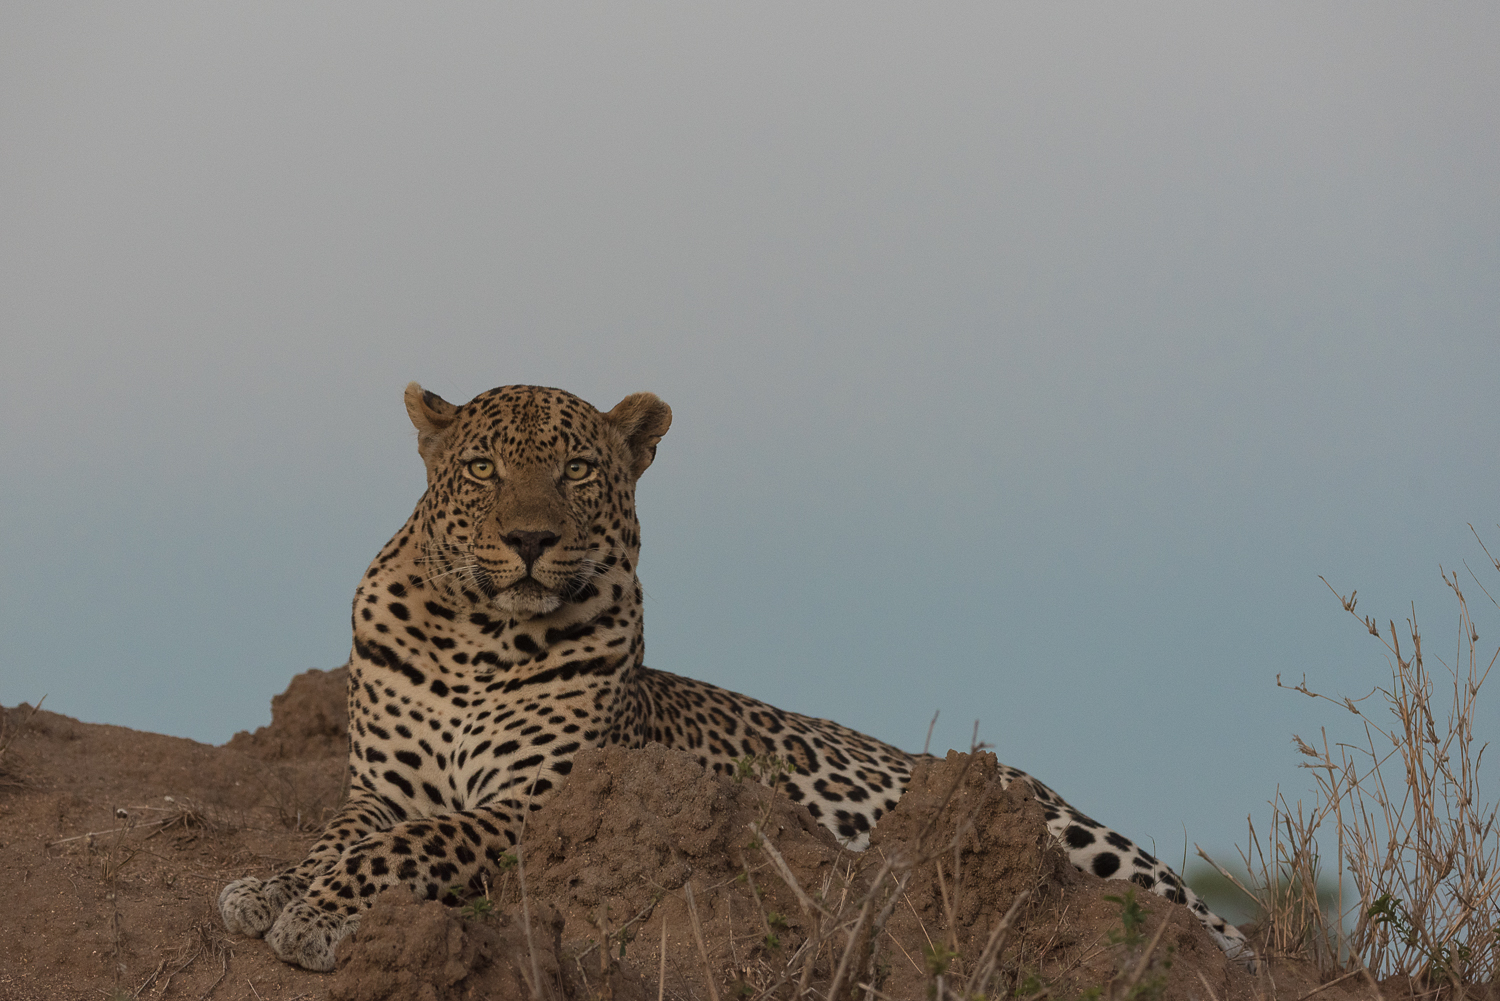 As the day settles into dusk, the Piva male leopard slowly starts his evening off, taking in his surroundings from atop a termite mound.